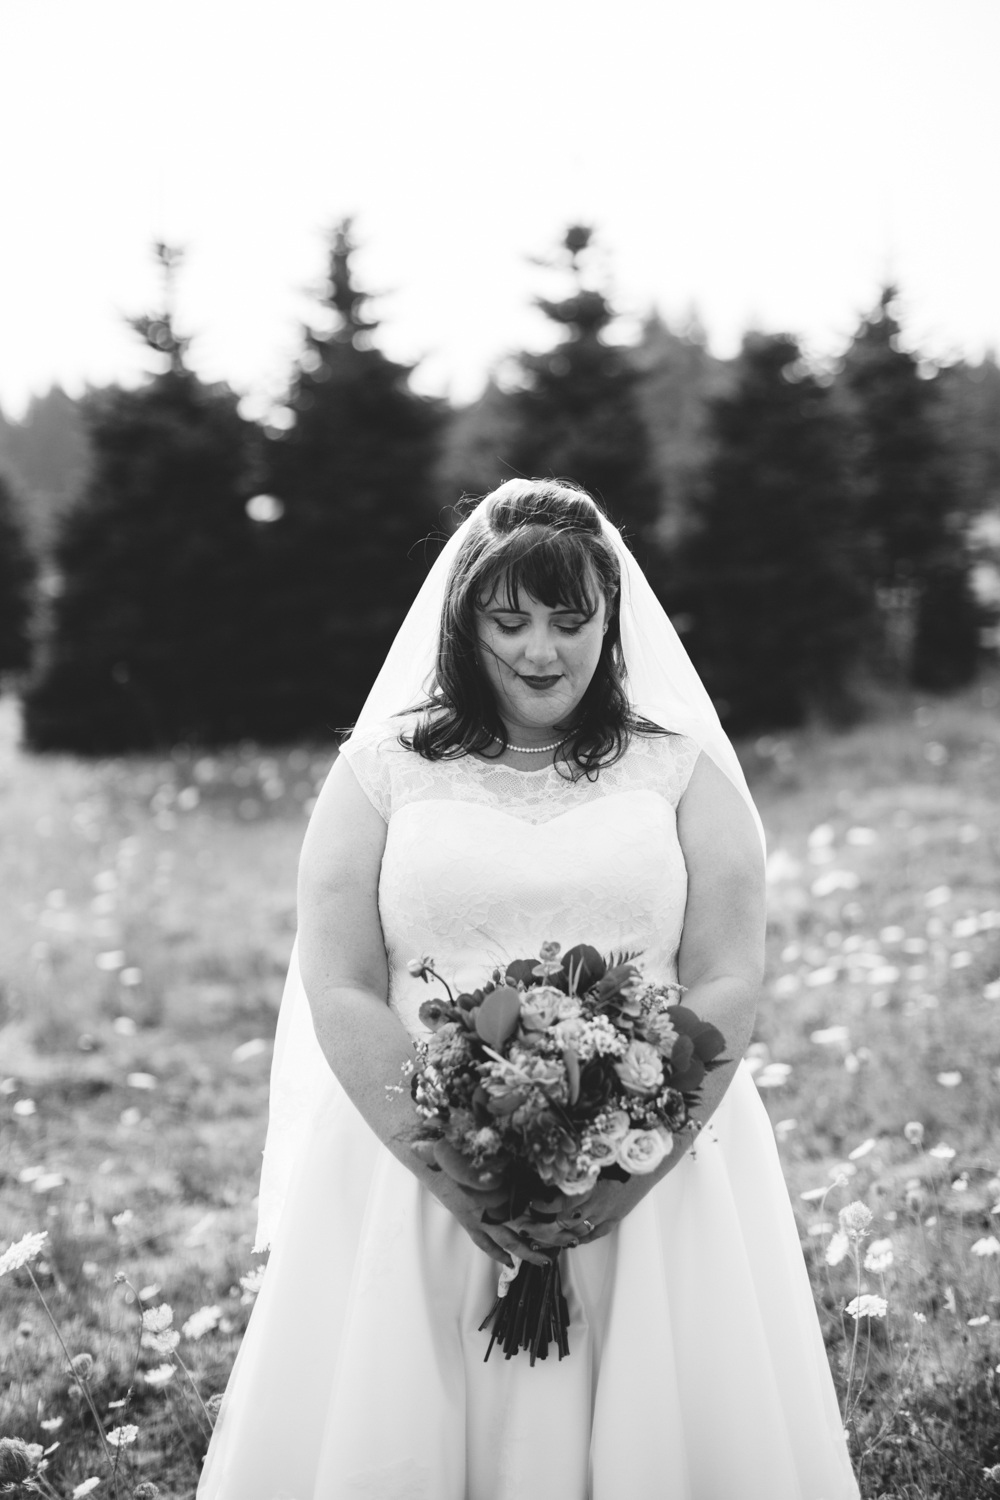 richmondvaweddingphotography-77.jpg